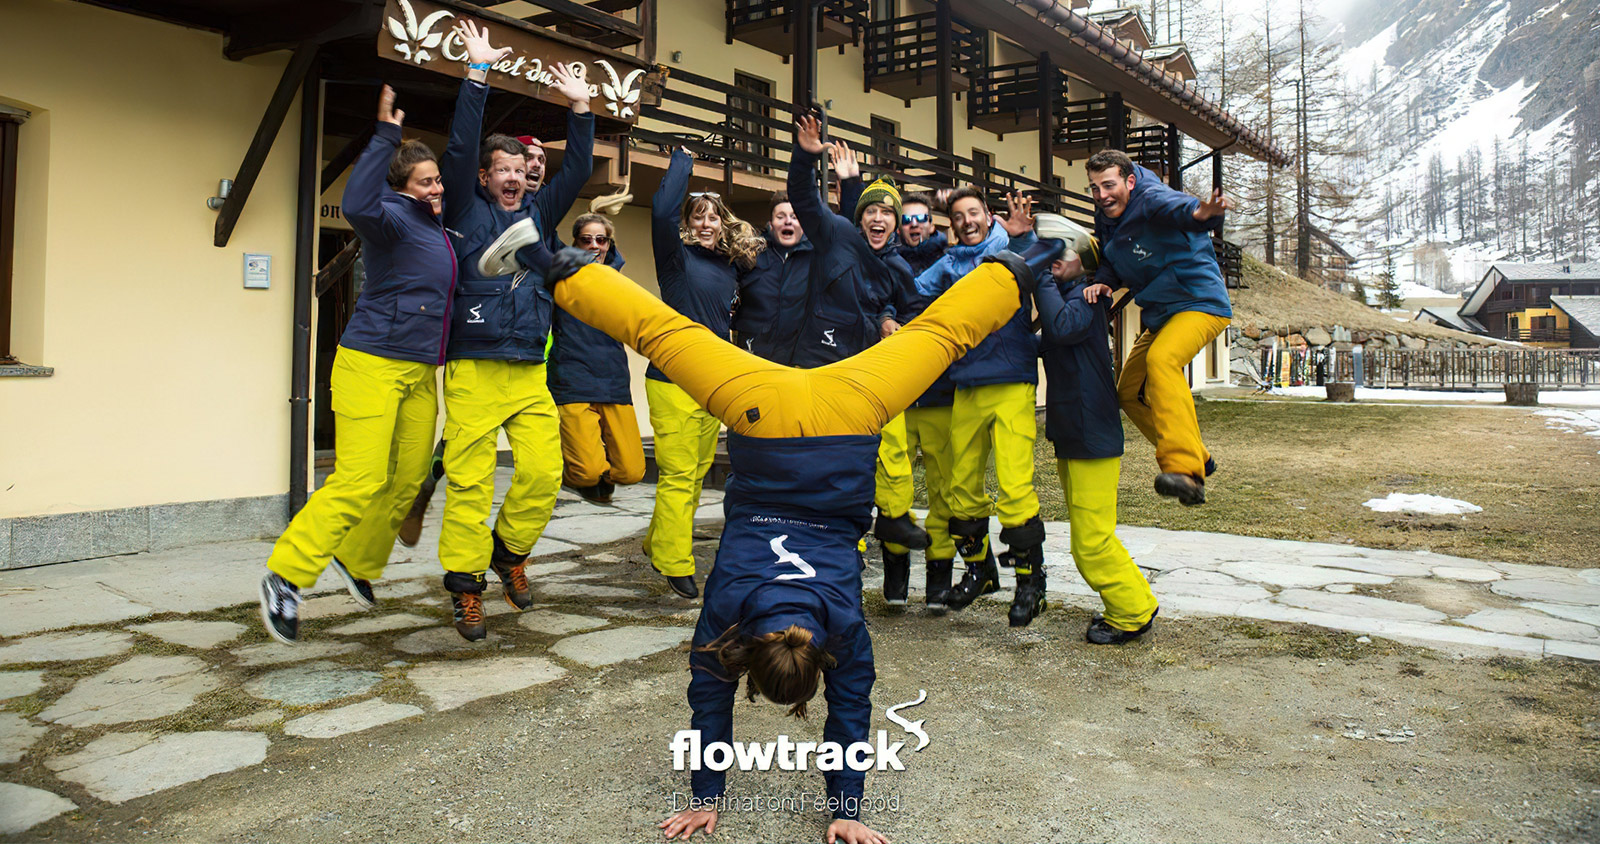 Another great year with the Flowtrack team!